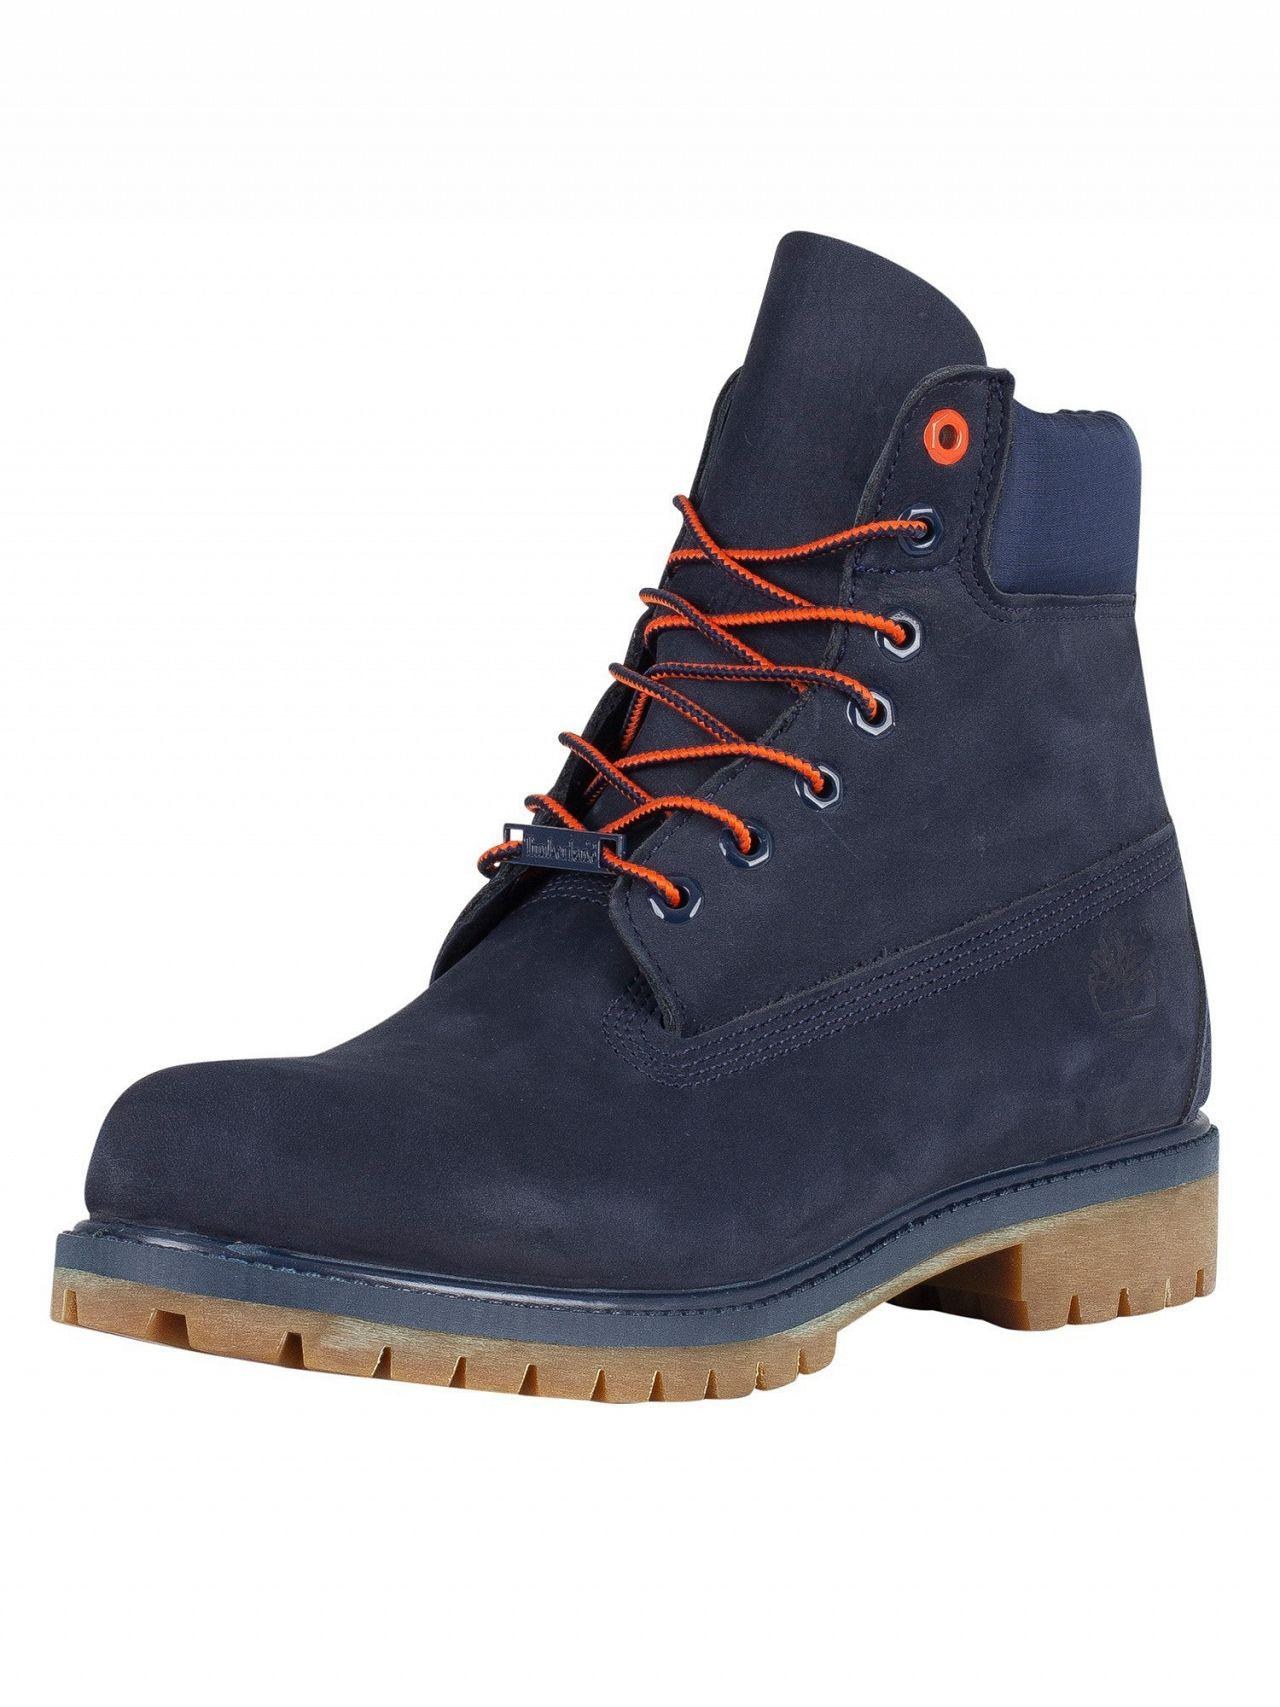 40d7d22f5a6a Lyst - Timberland Navy Nubuck Premium 6 Inch Waterproof Boots in ...